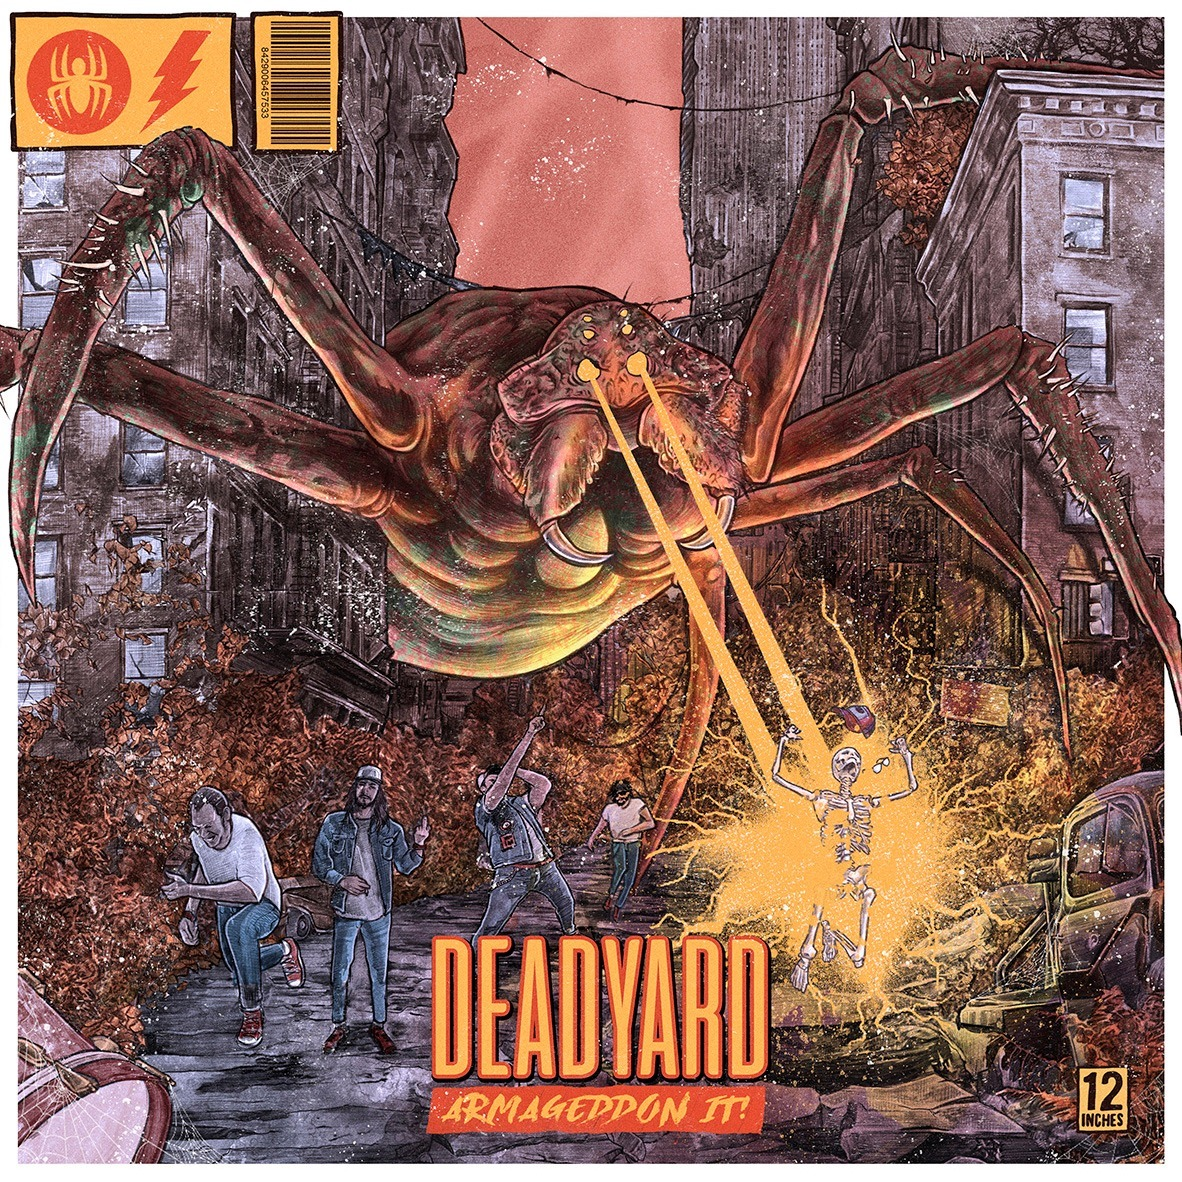 Deadyard Armaggedon It cover art